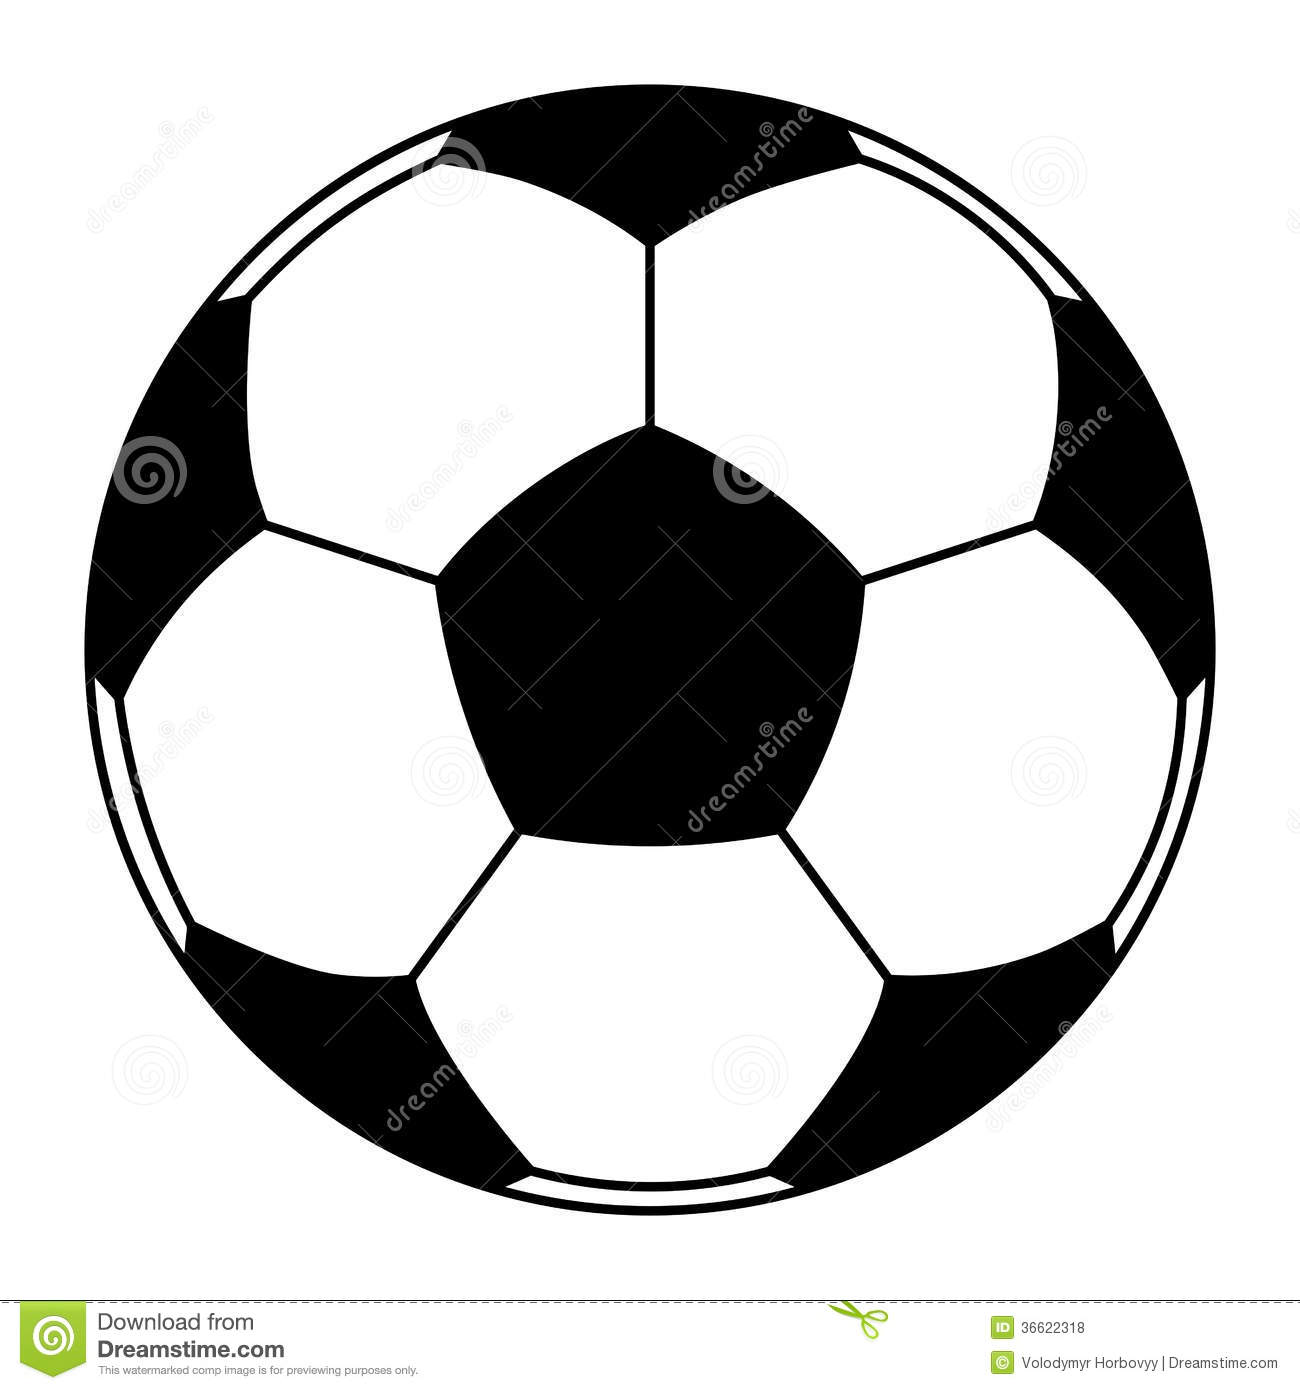 Vector icon of soccer ball isolated. clip-art.